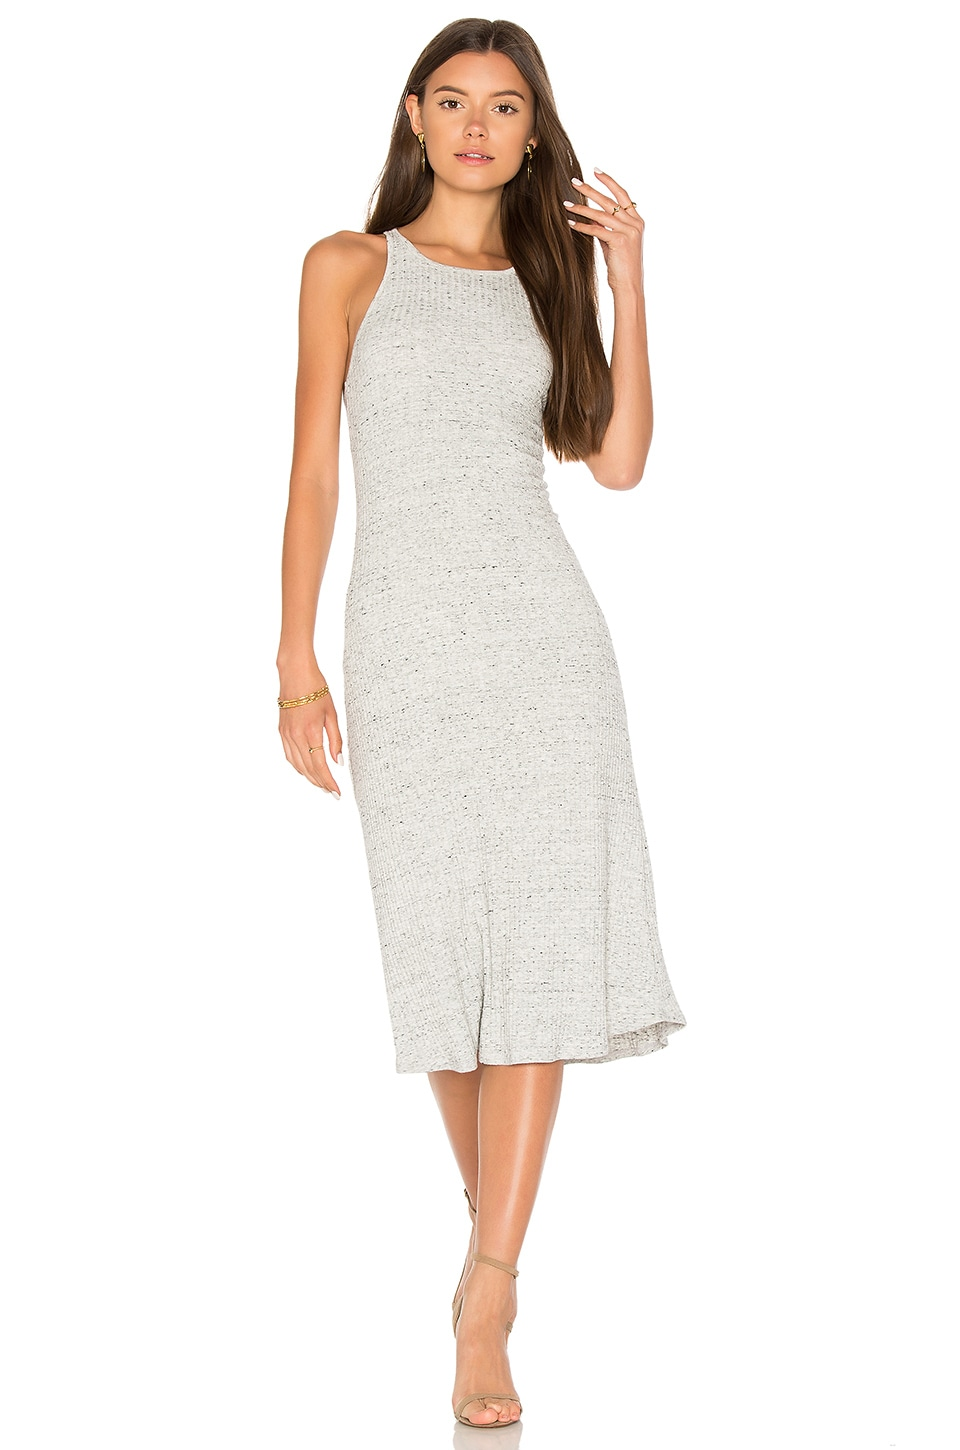 David Lerner Racer Mini Dress in Light Heather Grey